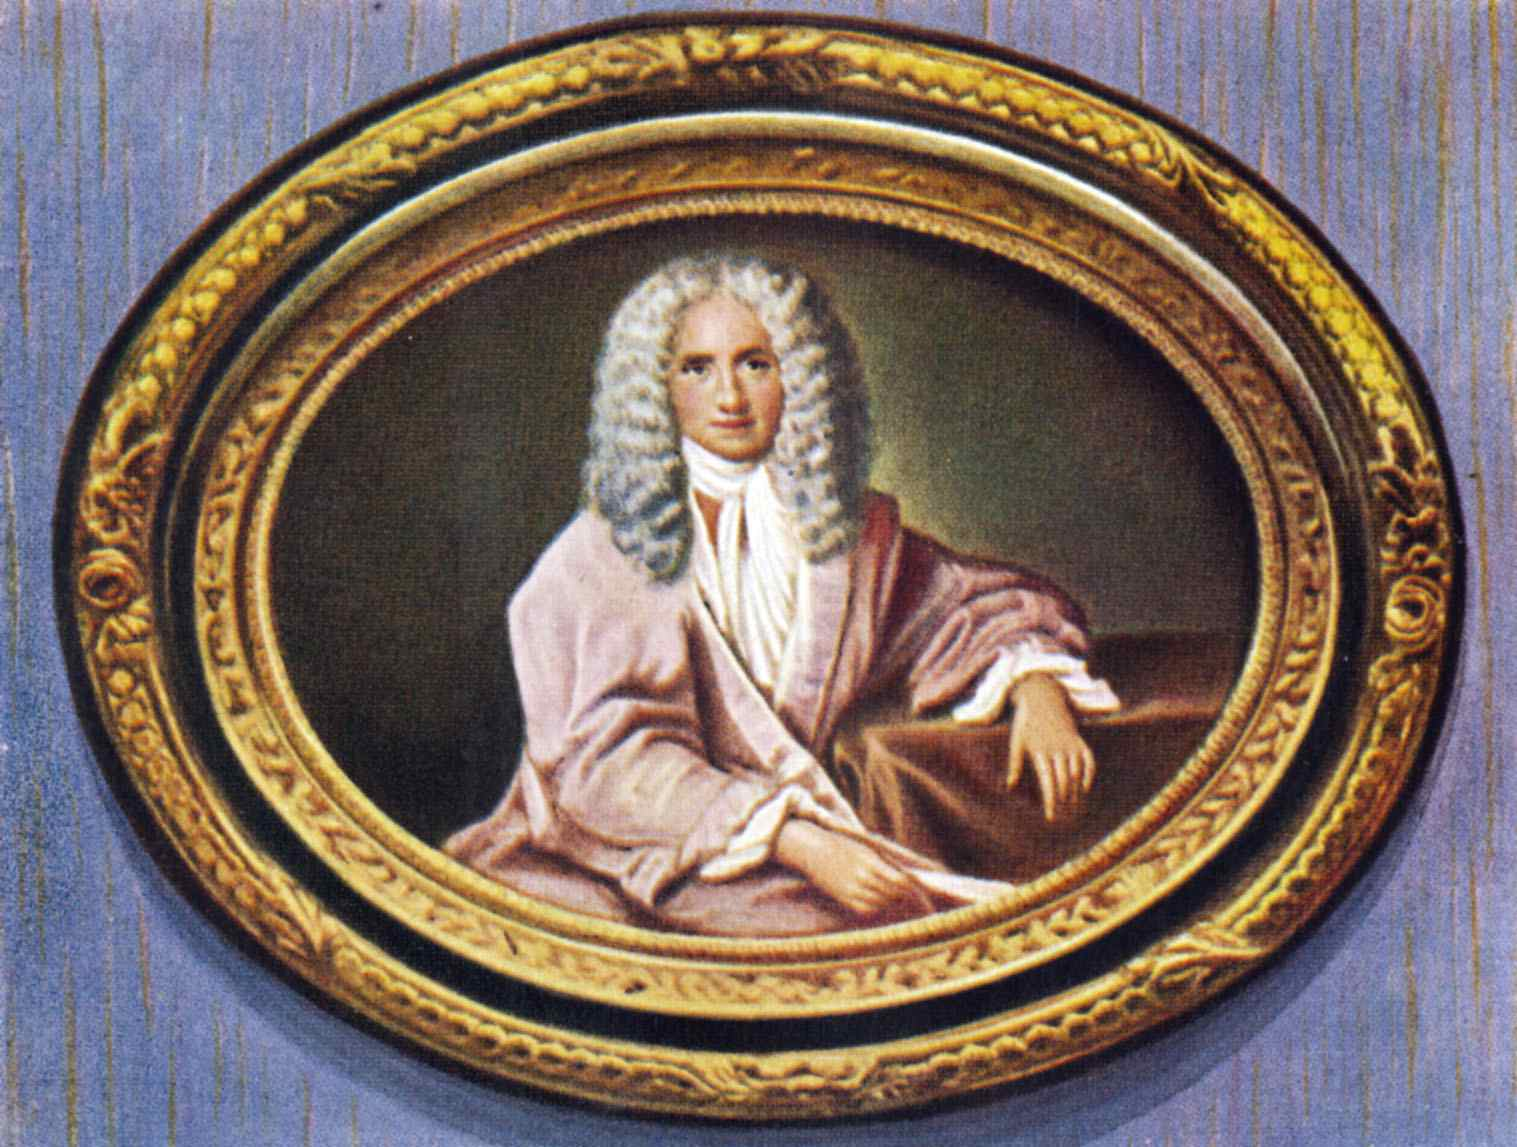 Voltaire. Portrait of the French writer and philosopher. Born as François-Marie Arouet.